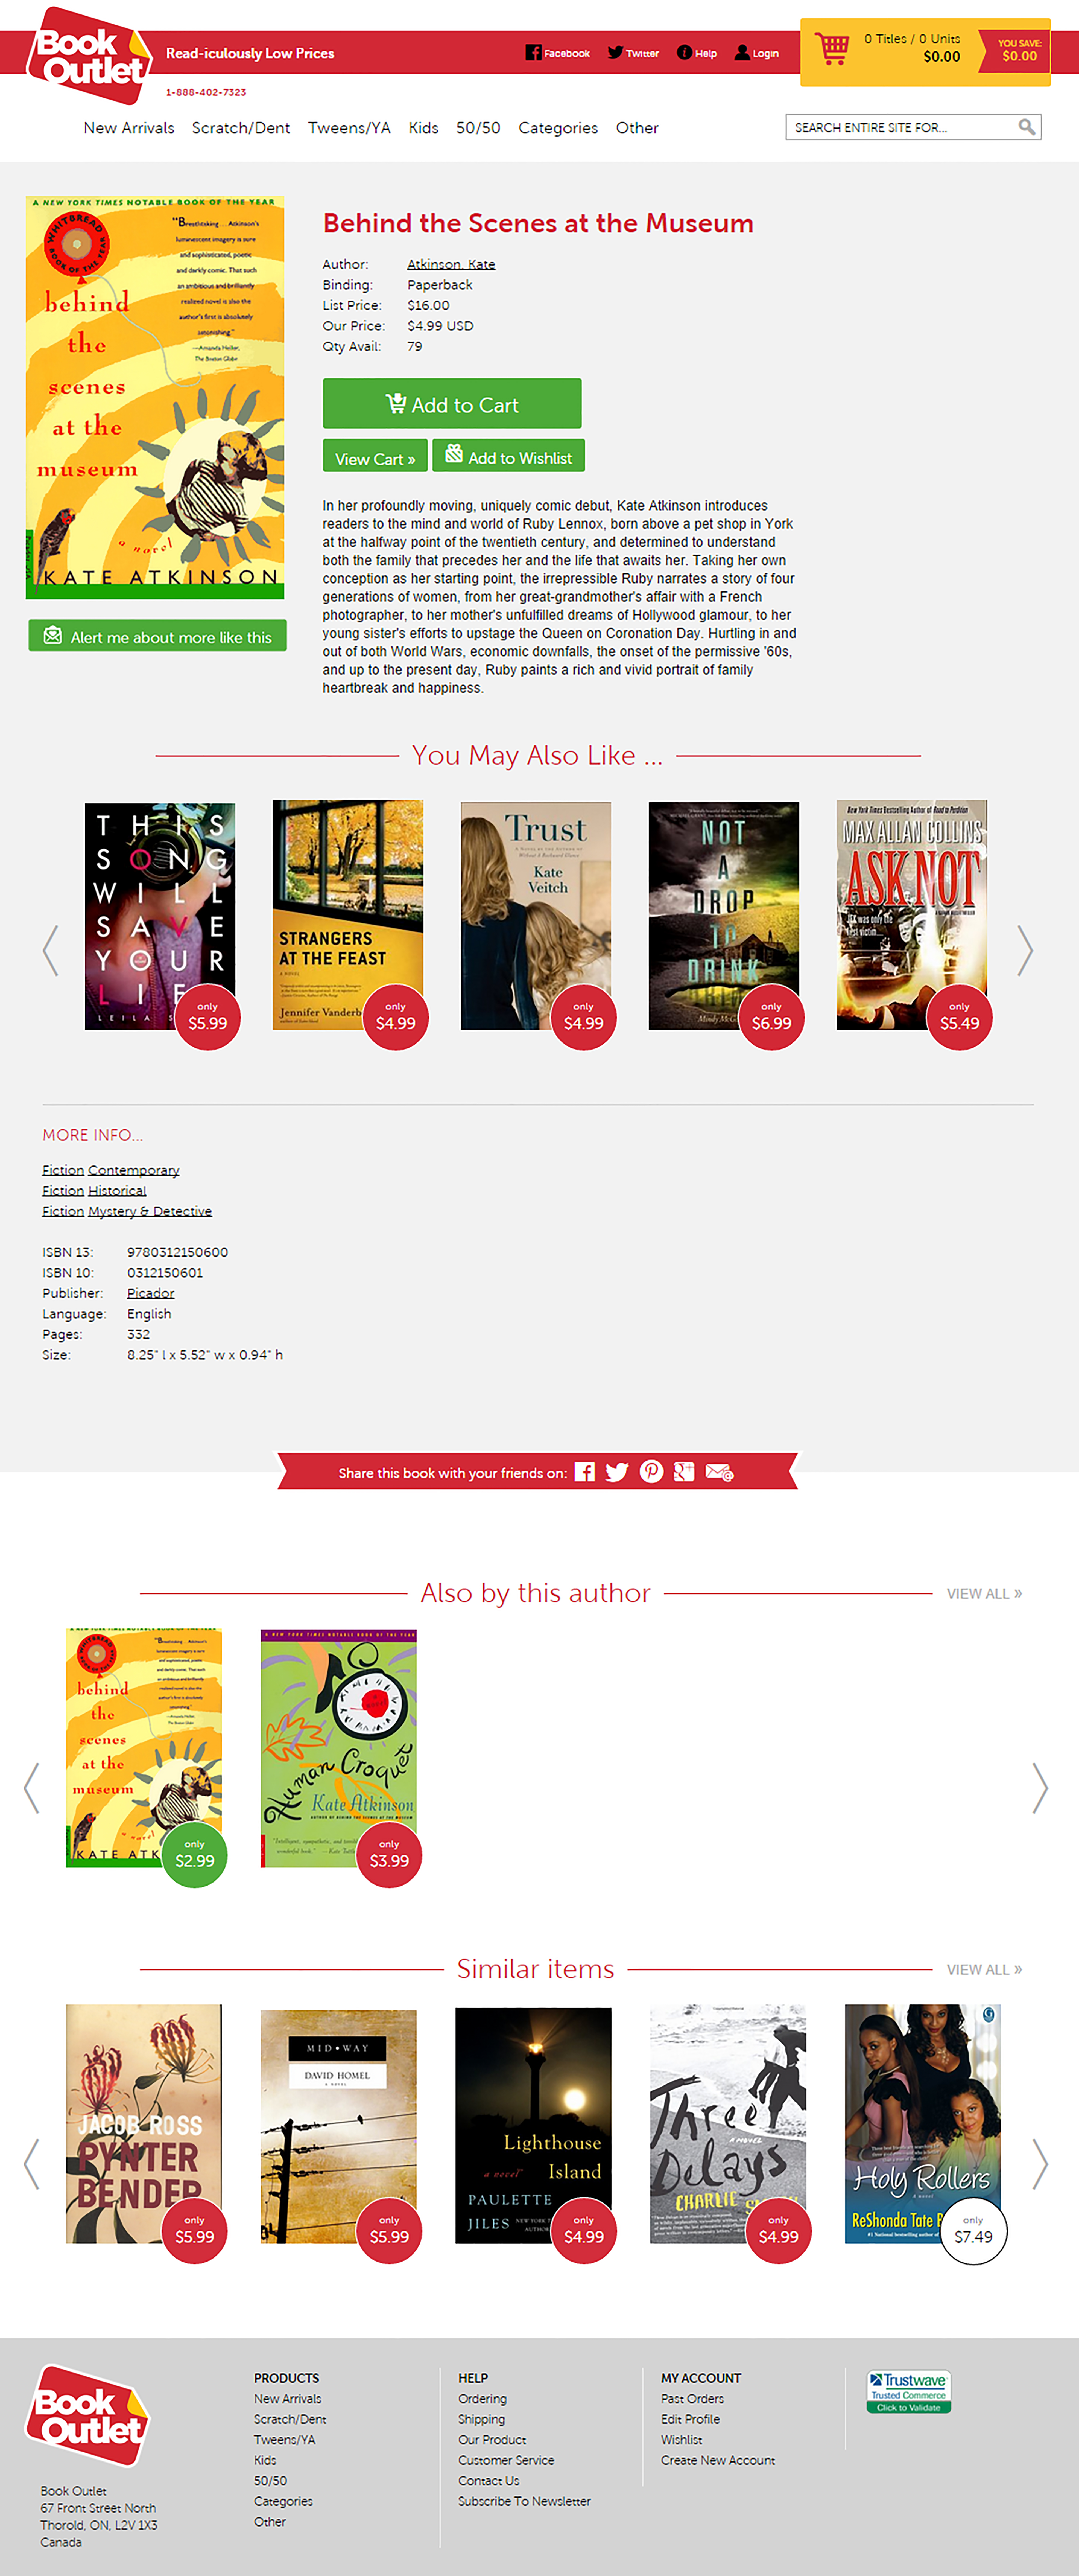 Book Outlet Web Page.jpg